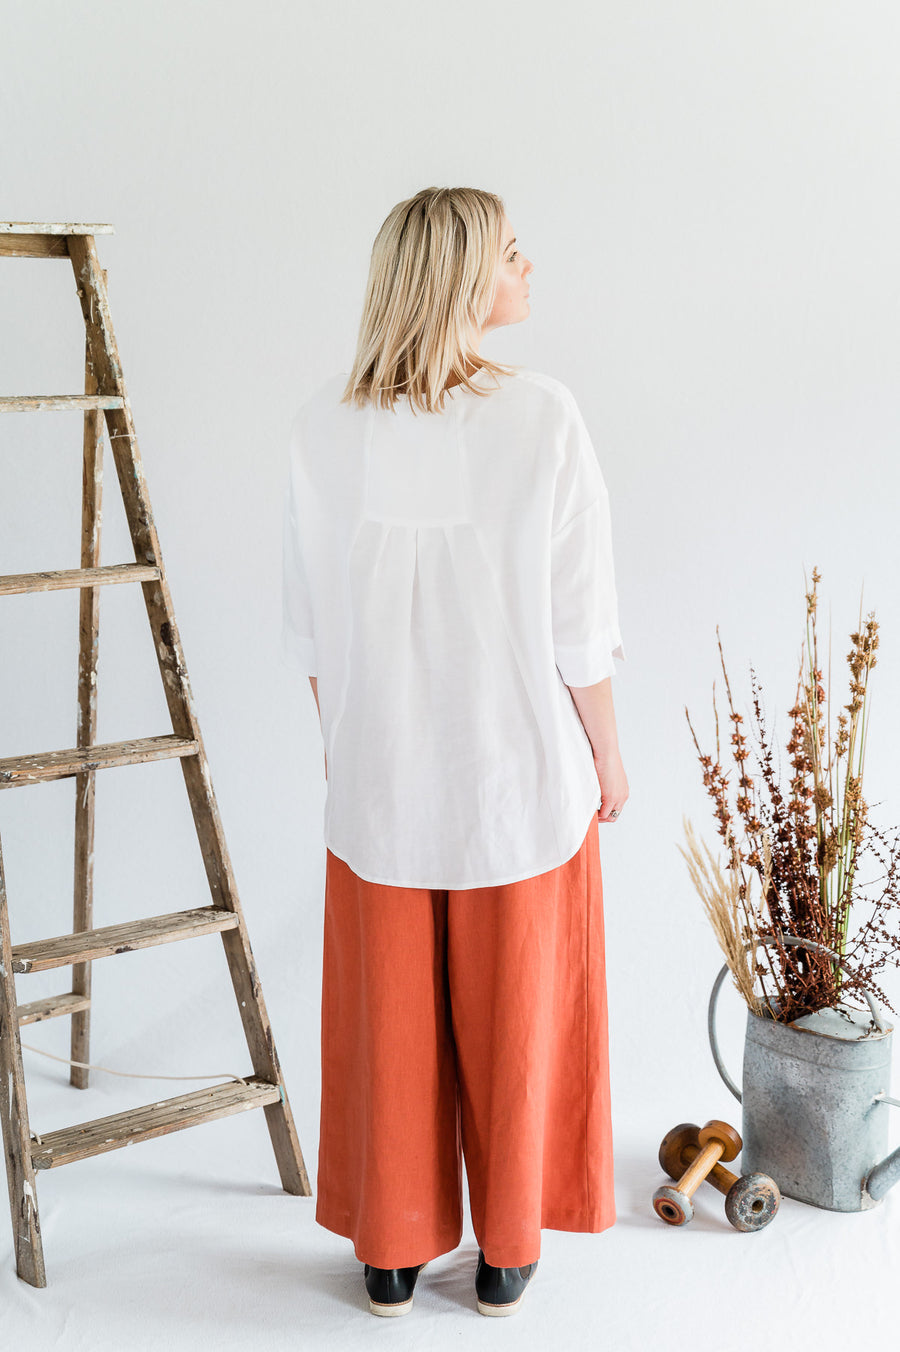 Field Top - White - Shop Online At Mookah - mookah.com.au